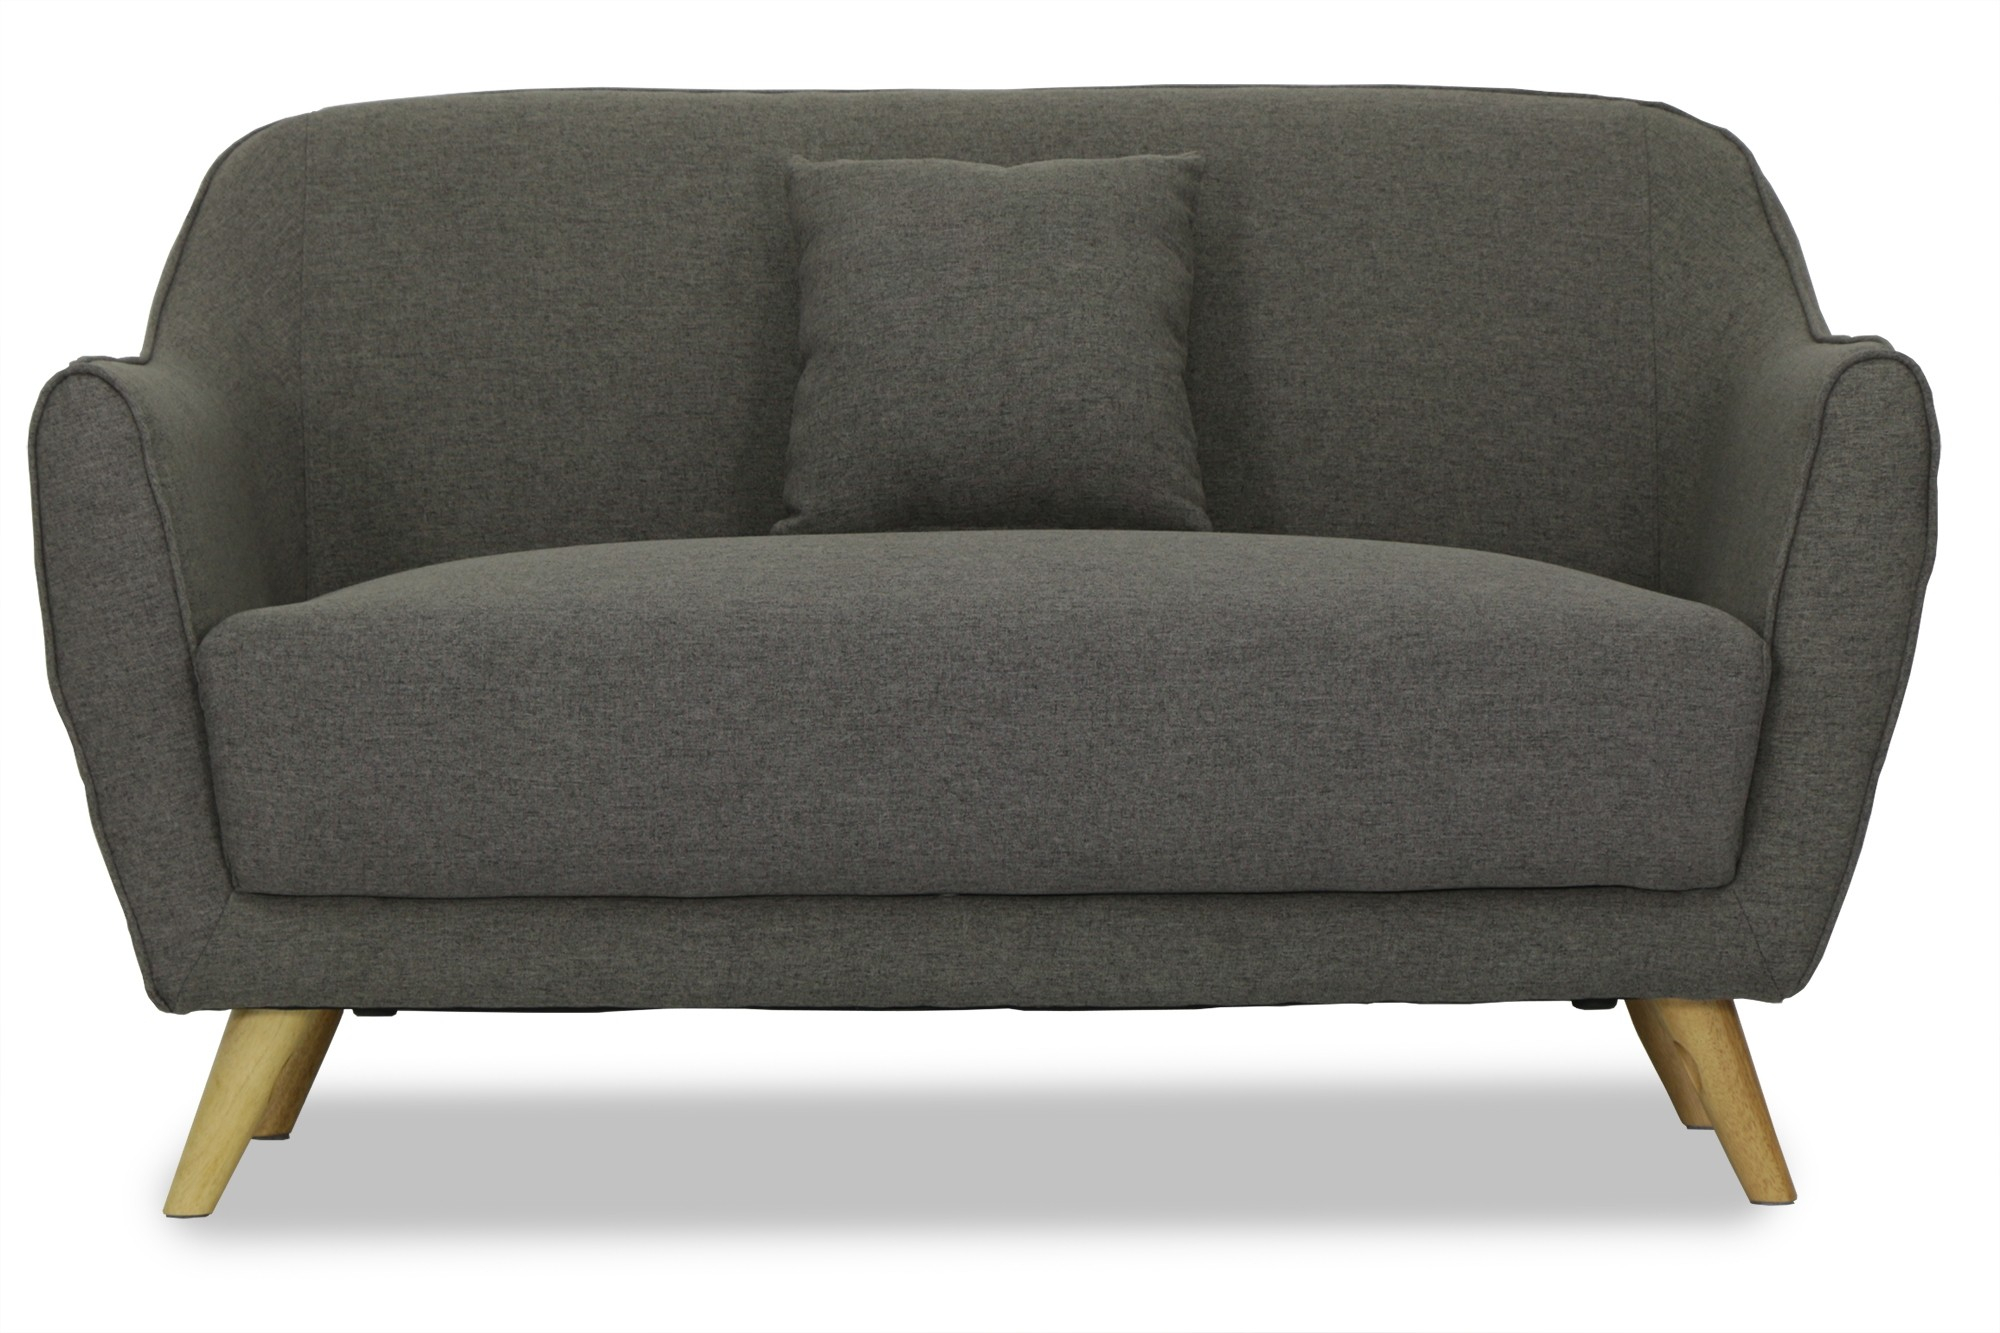 Kokoro Ii 2 Seater Sofa | Furniture & Home Décor | Fortytwo intended for Gina Blue Leather Sofa Chairs